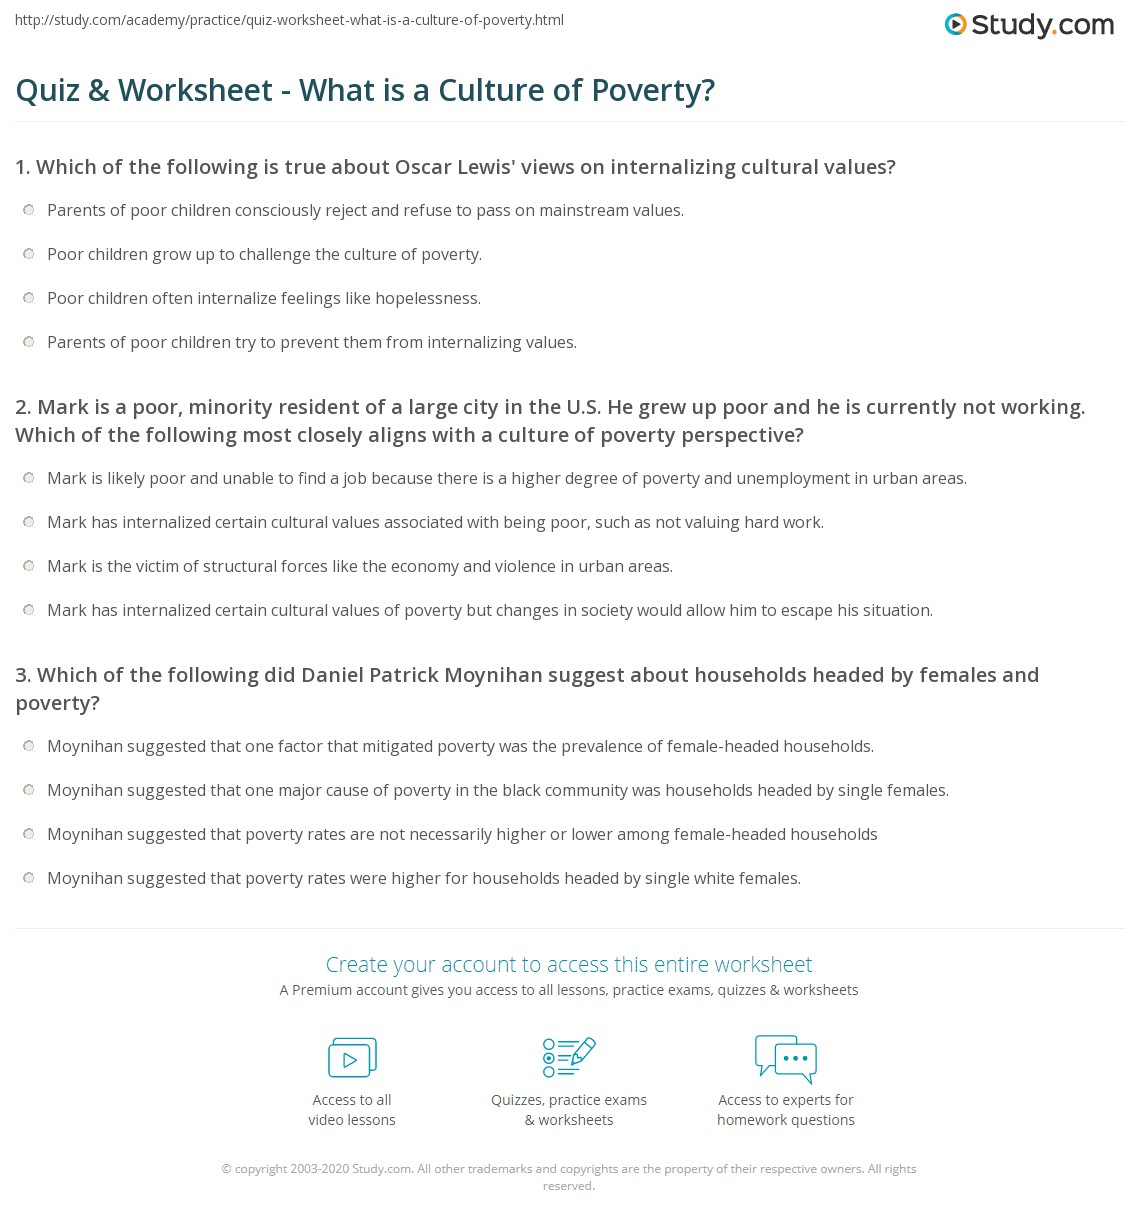 quiz worksheet what is a culture of poverty com 1 mark is a poor minority resident of a large city in the u s he grew up poor and he is currently not working which of the following most closely aligns